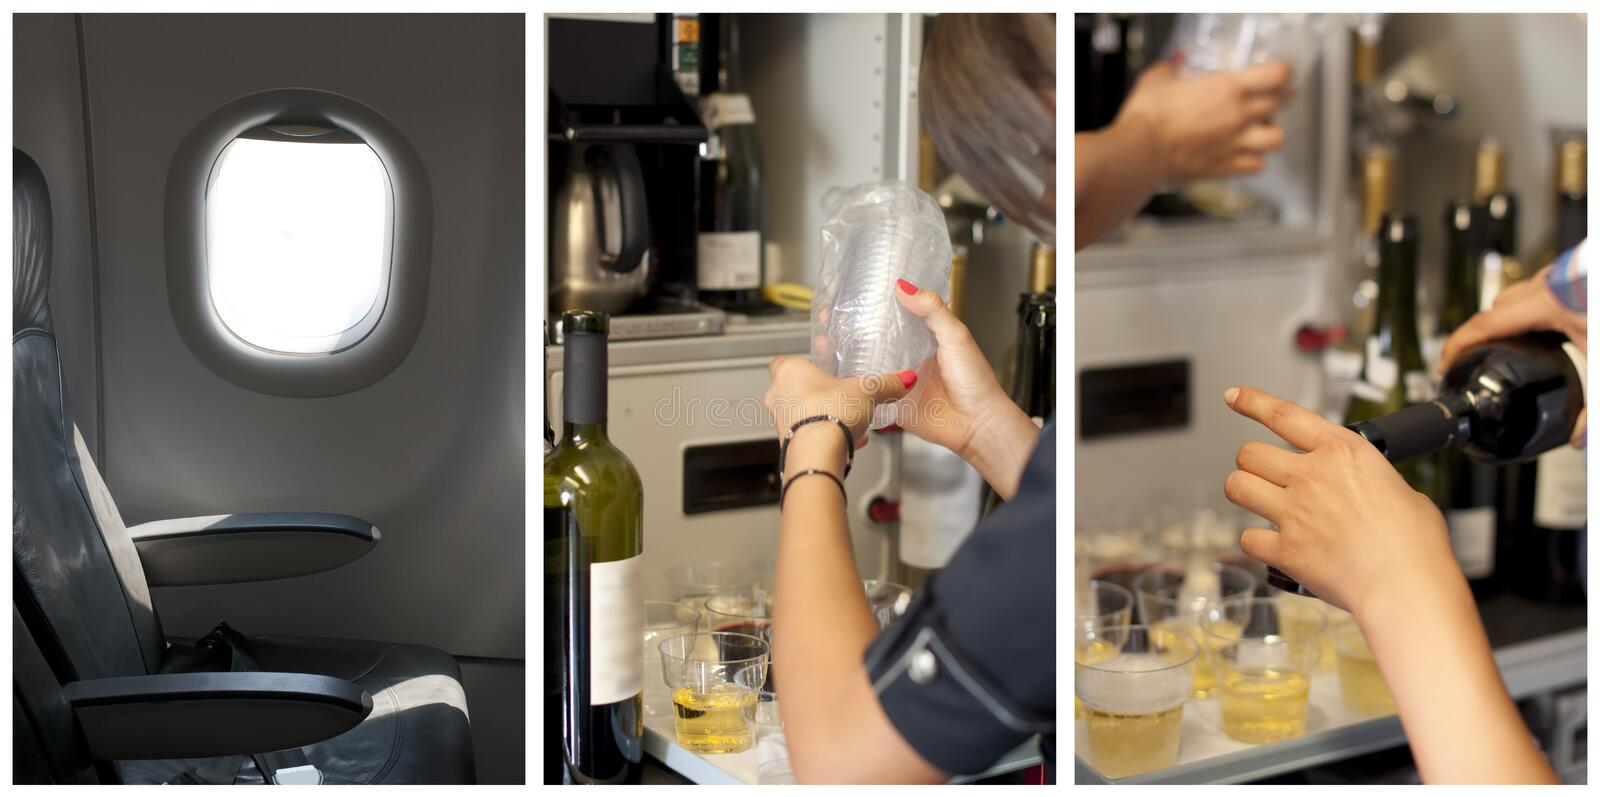 Download Passenger Seat In An Airplane. Stewardess Poured Stock Image - Image: 21007581